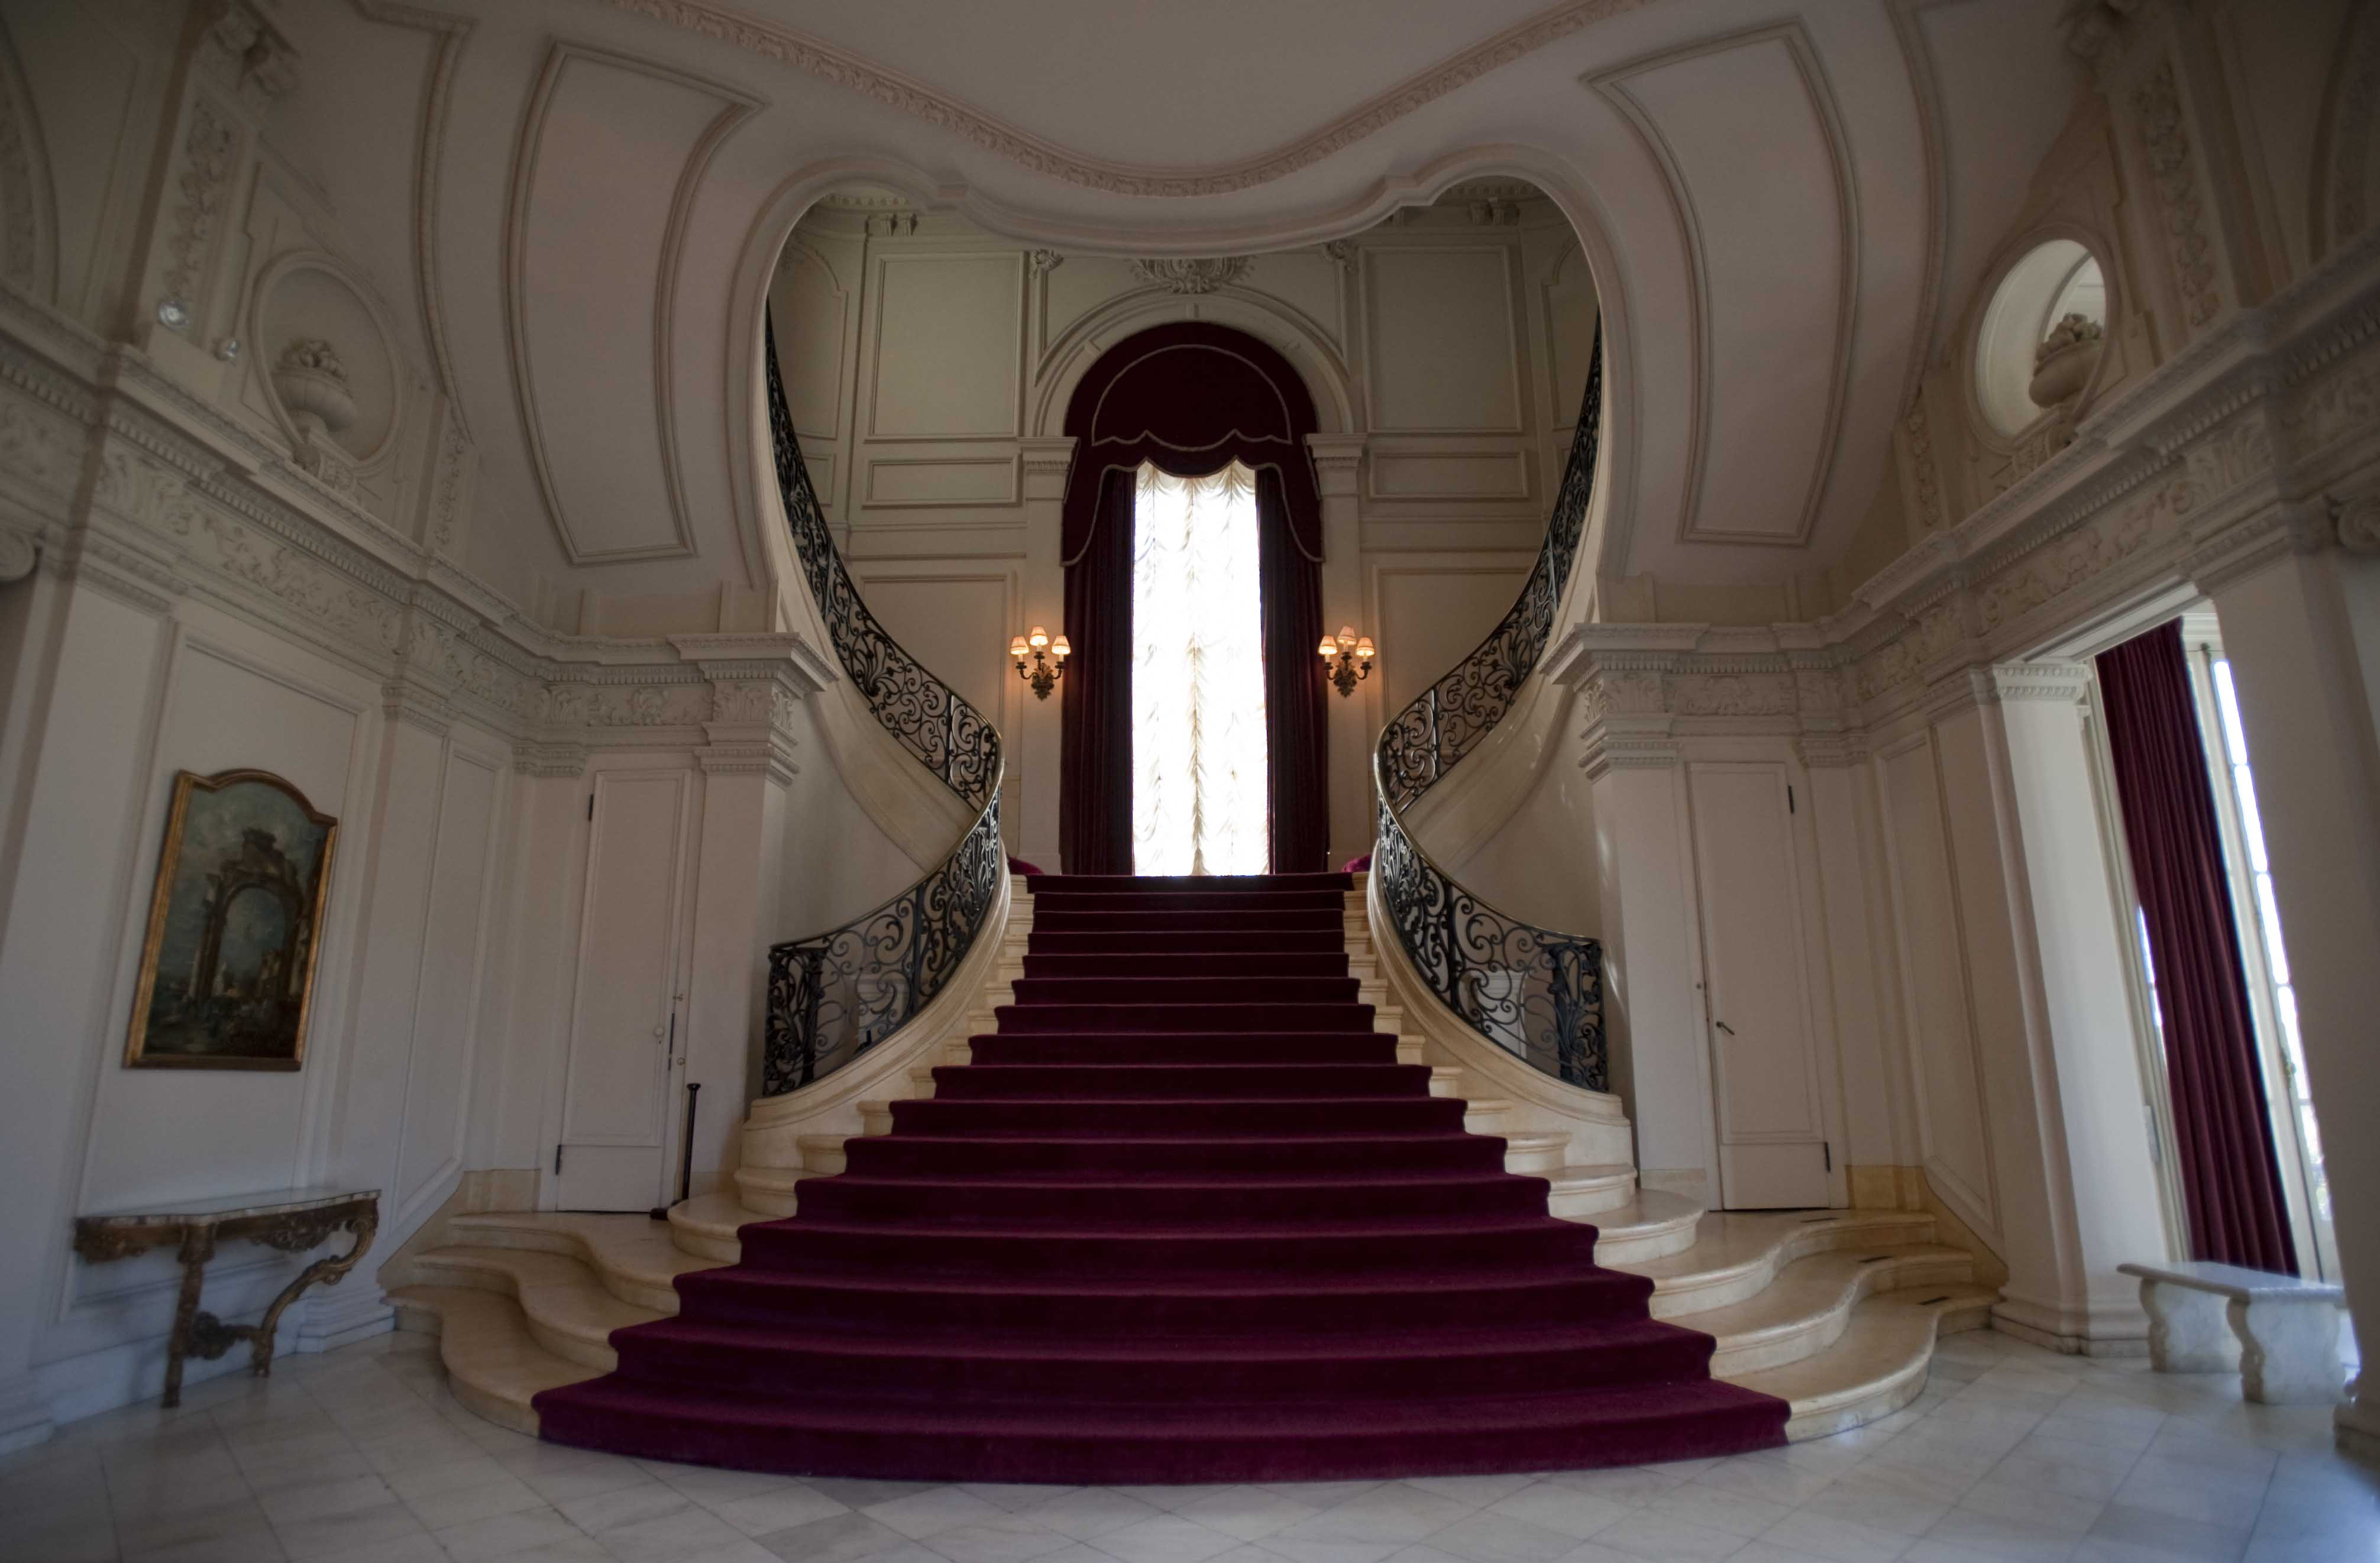 Rosecliffu0027s Heart Shaped Grand Staircase. Guests Are Greeted By Marble  Statues Of Diana And